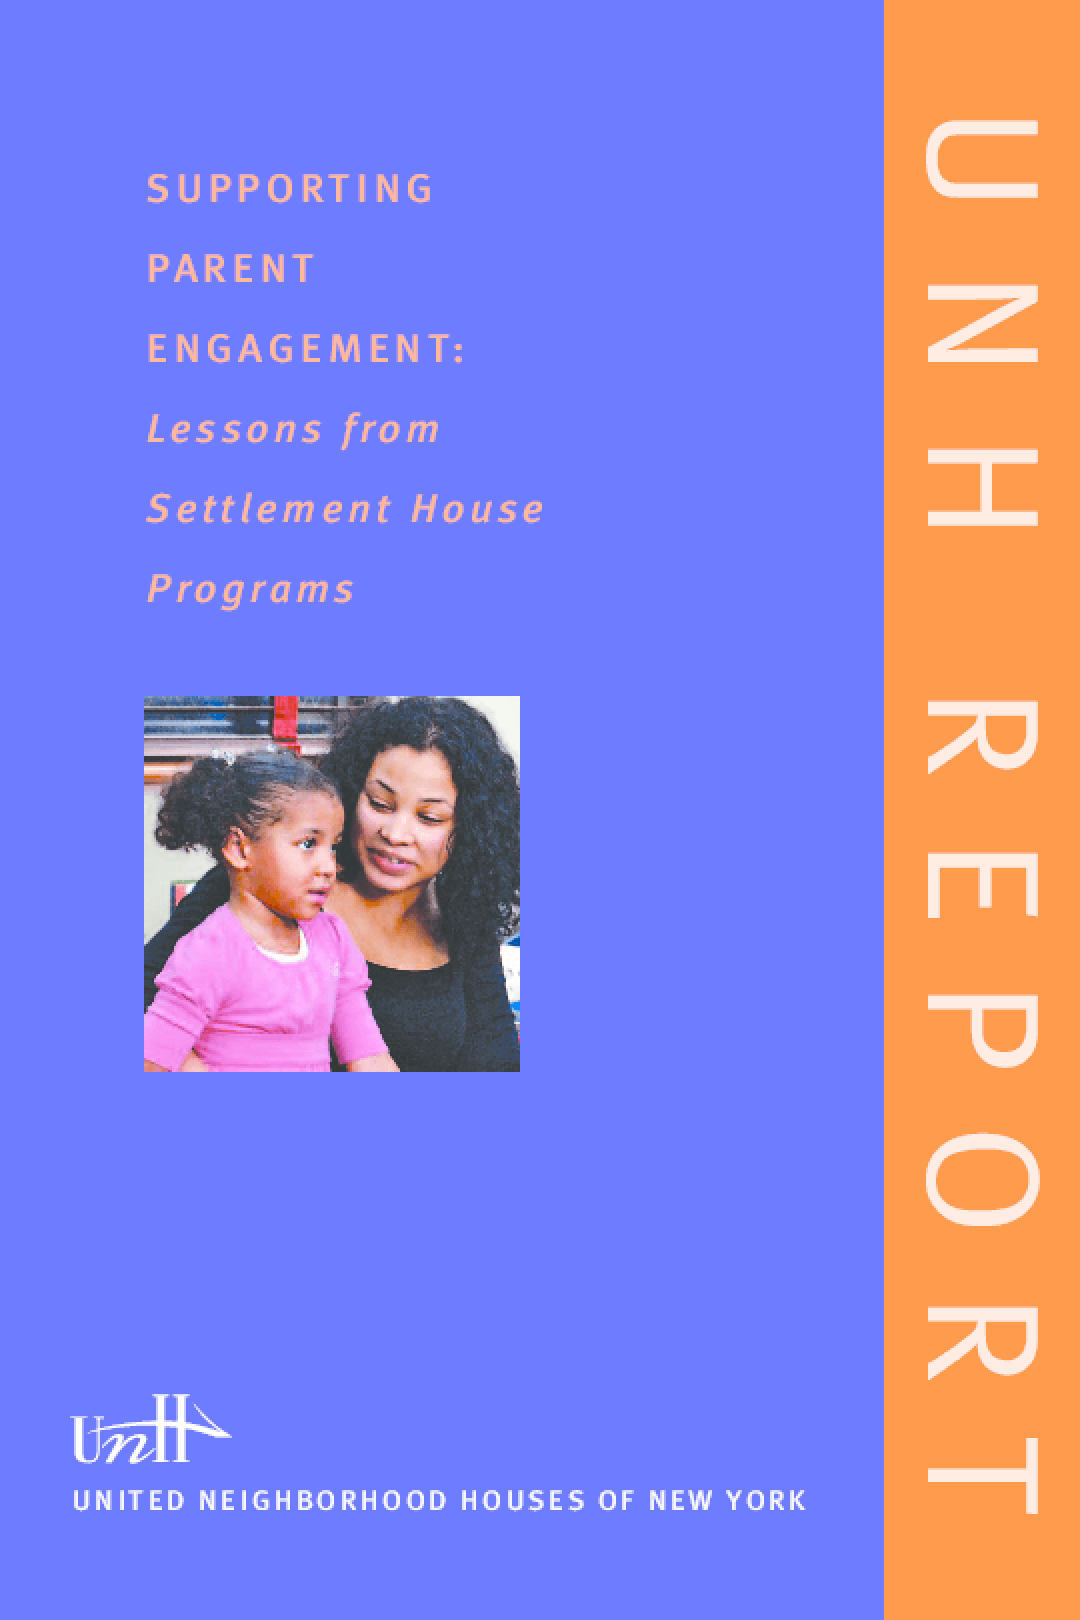 Supporting Parent Engagement: Lessons from Settlement House Programs